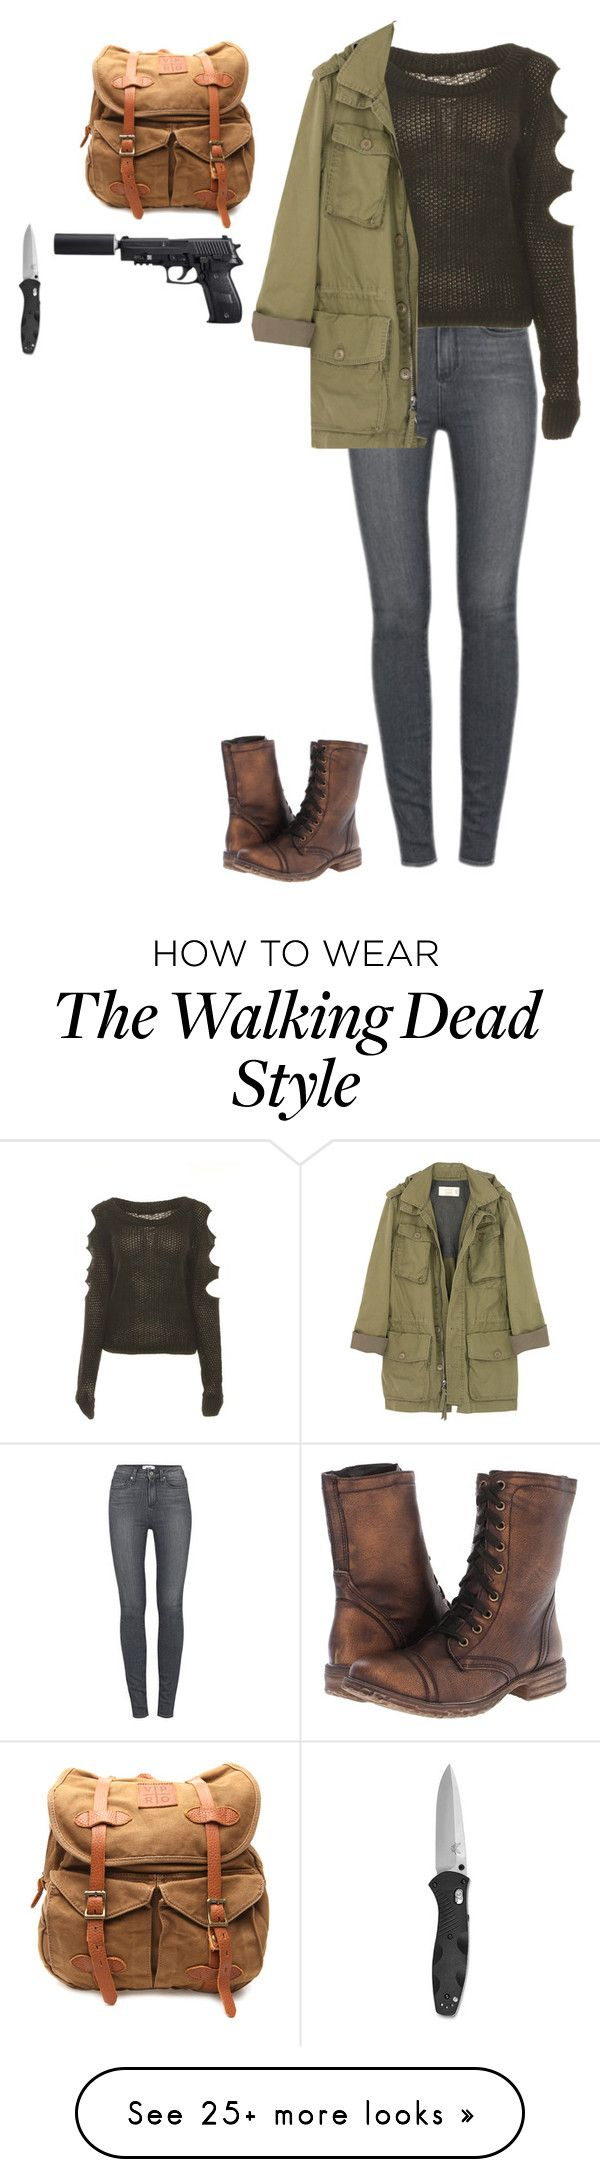 """""""the walking dead- inspired Halloween costume"""" by weareallmadhere-96 on Polyvore featuring Paige Denim, J.Crew, Volatile and VIPARO"""